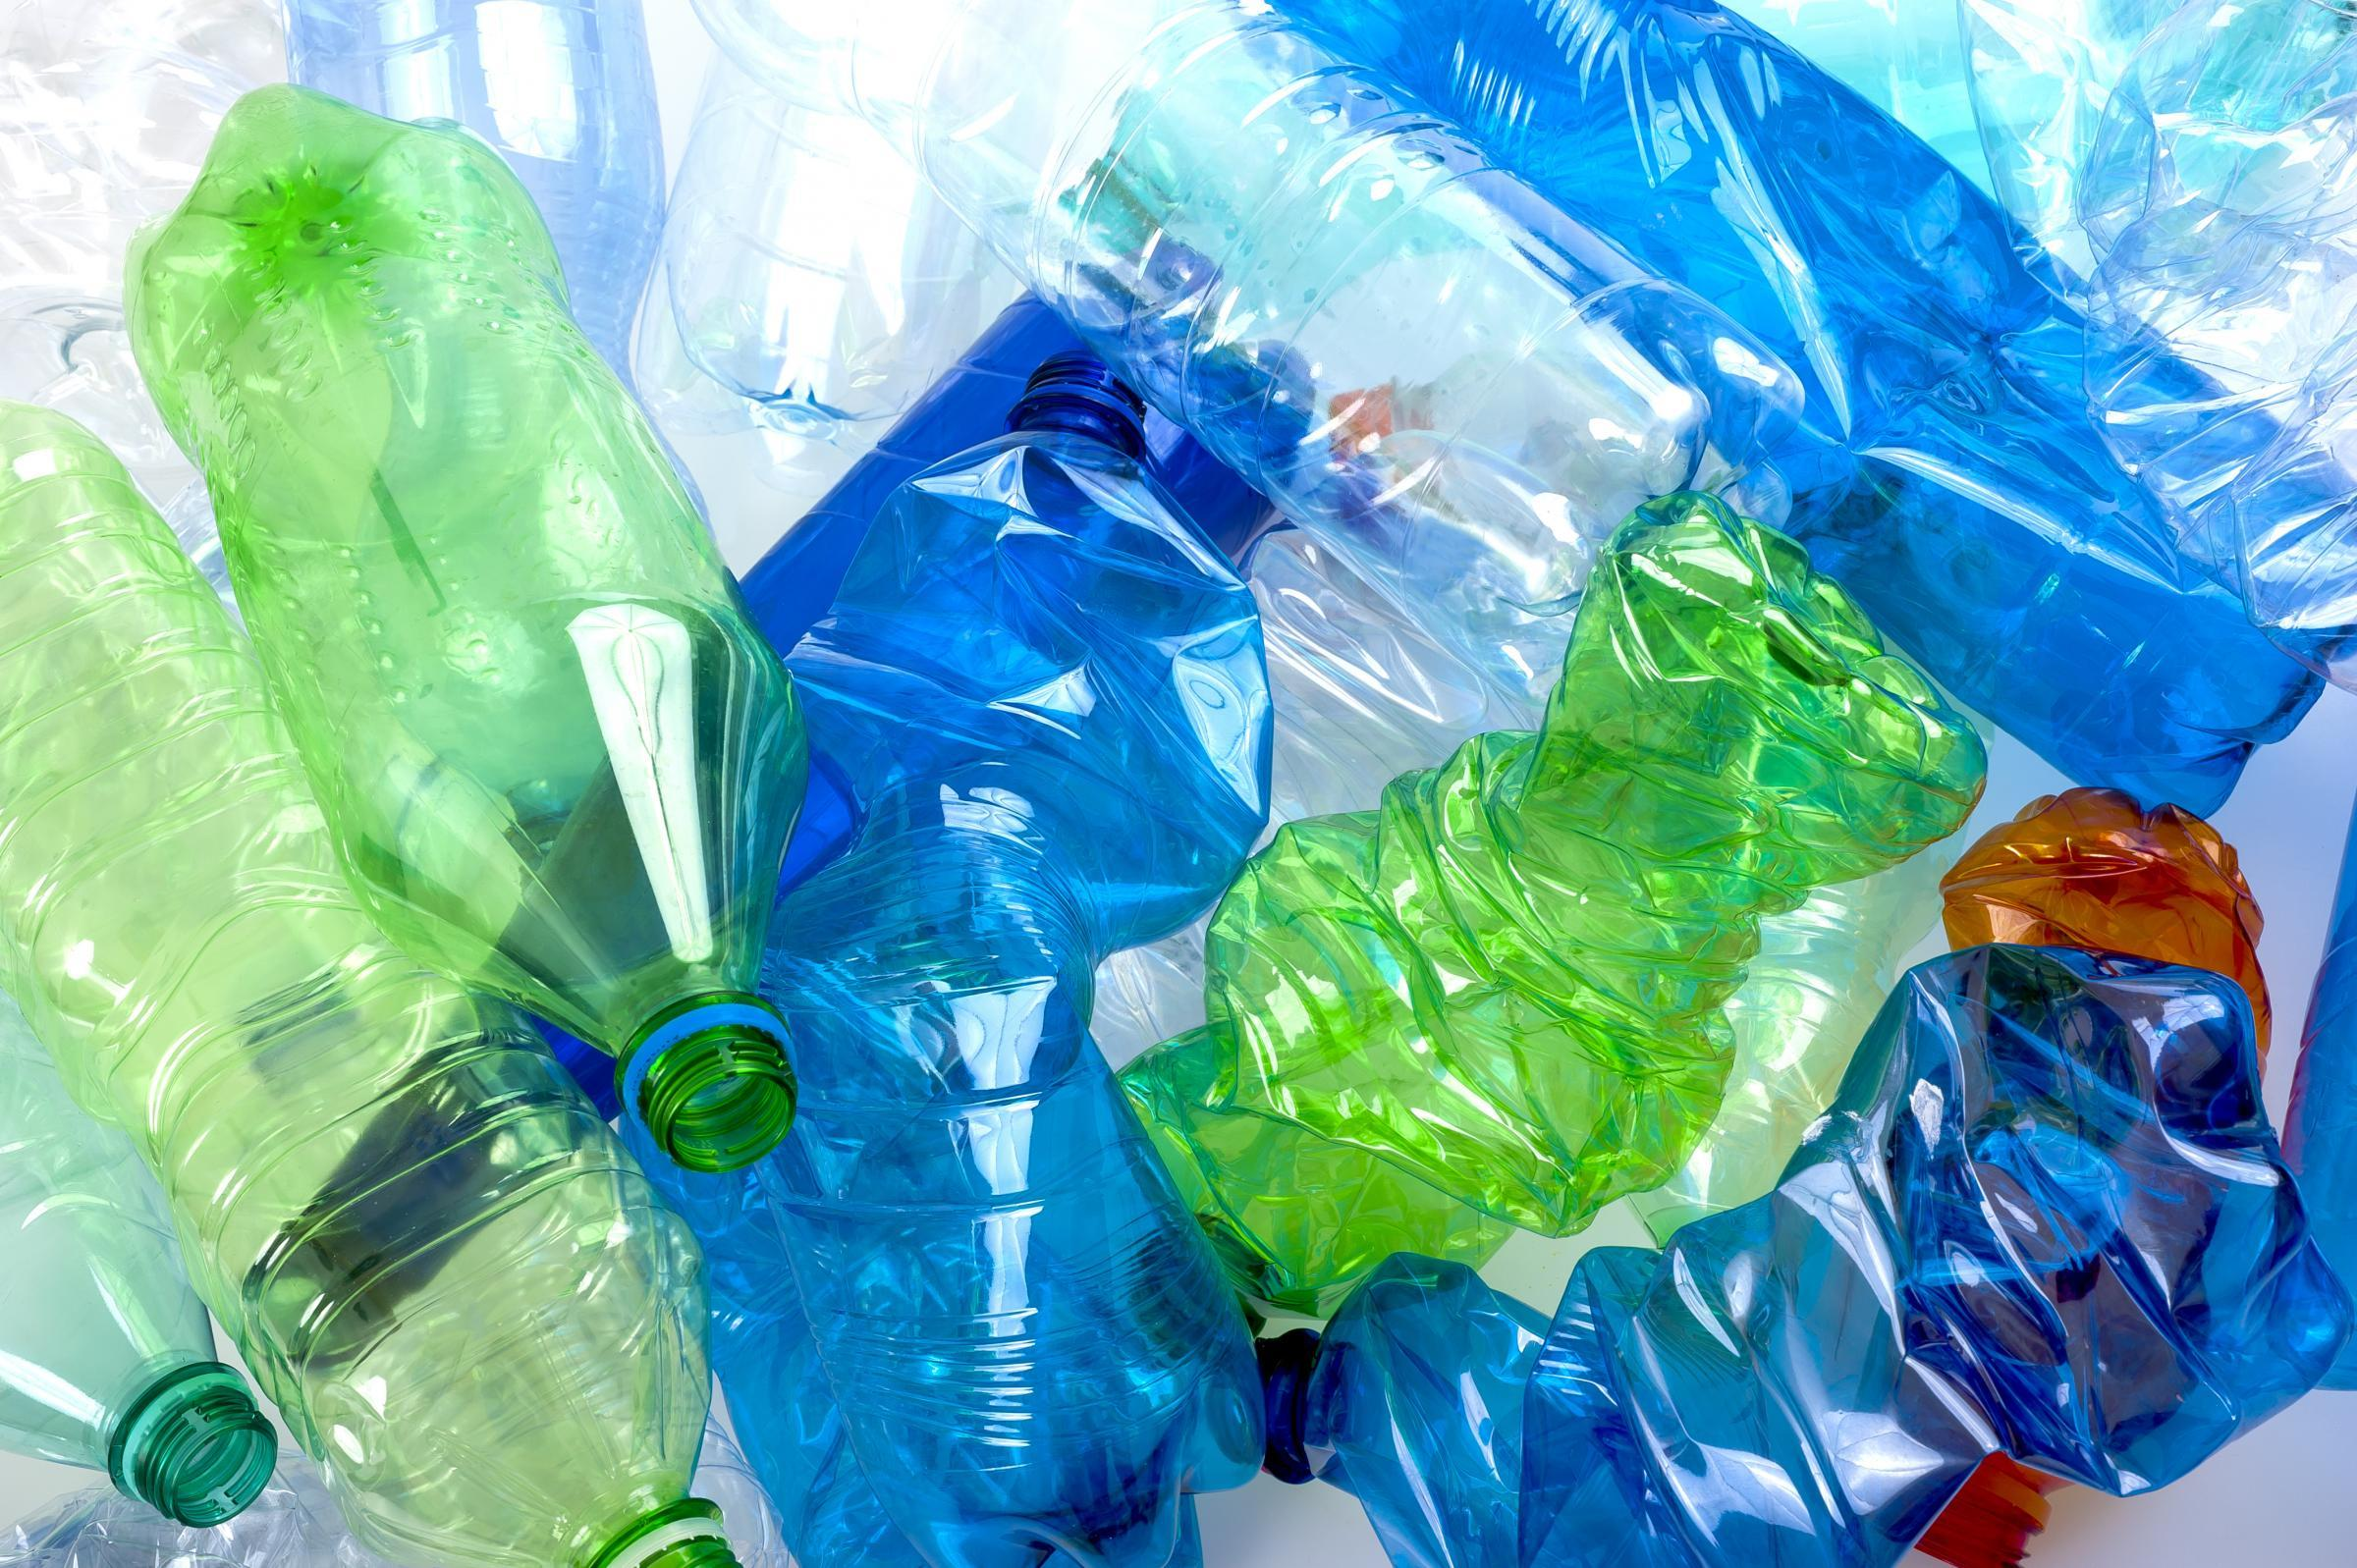 Concerns are growing over the damage plastic does to the environment